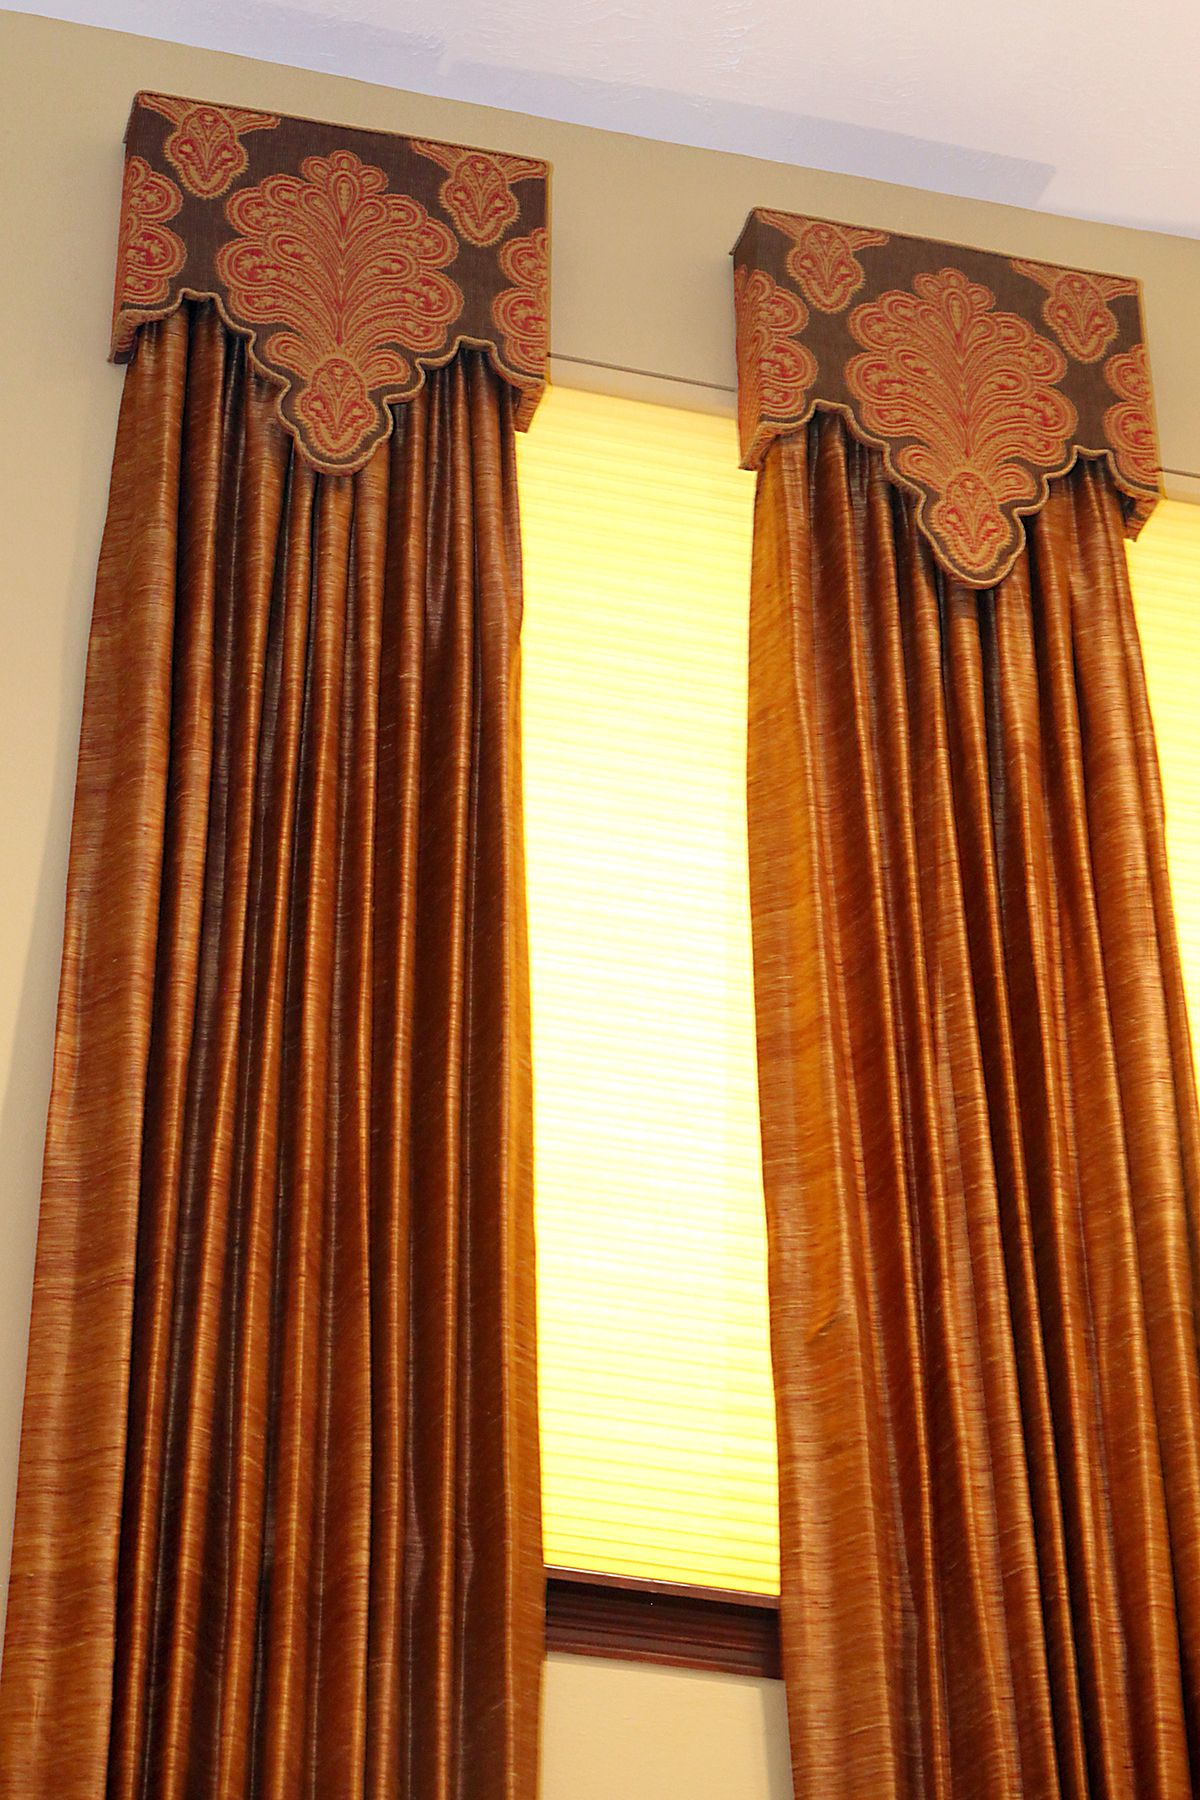 A Closer Look At These Custom Cornices Which Are Uniquely